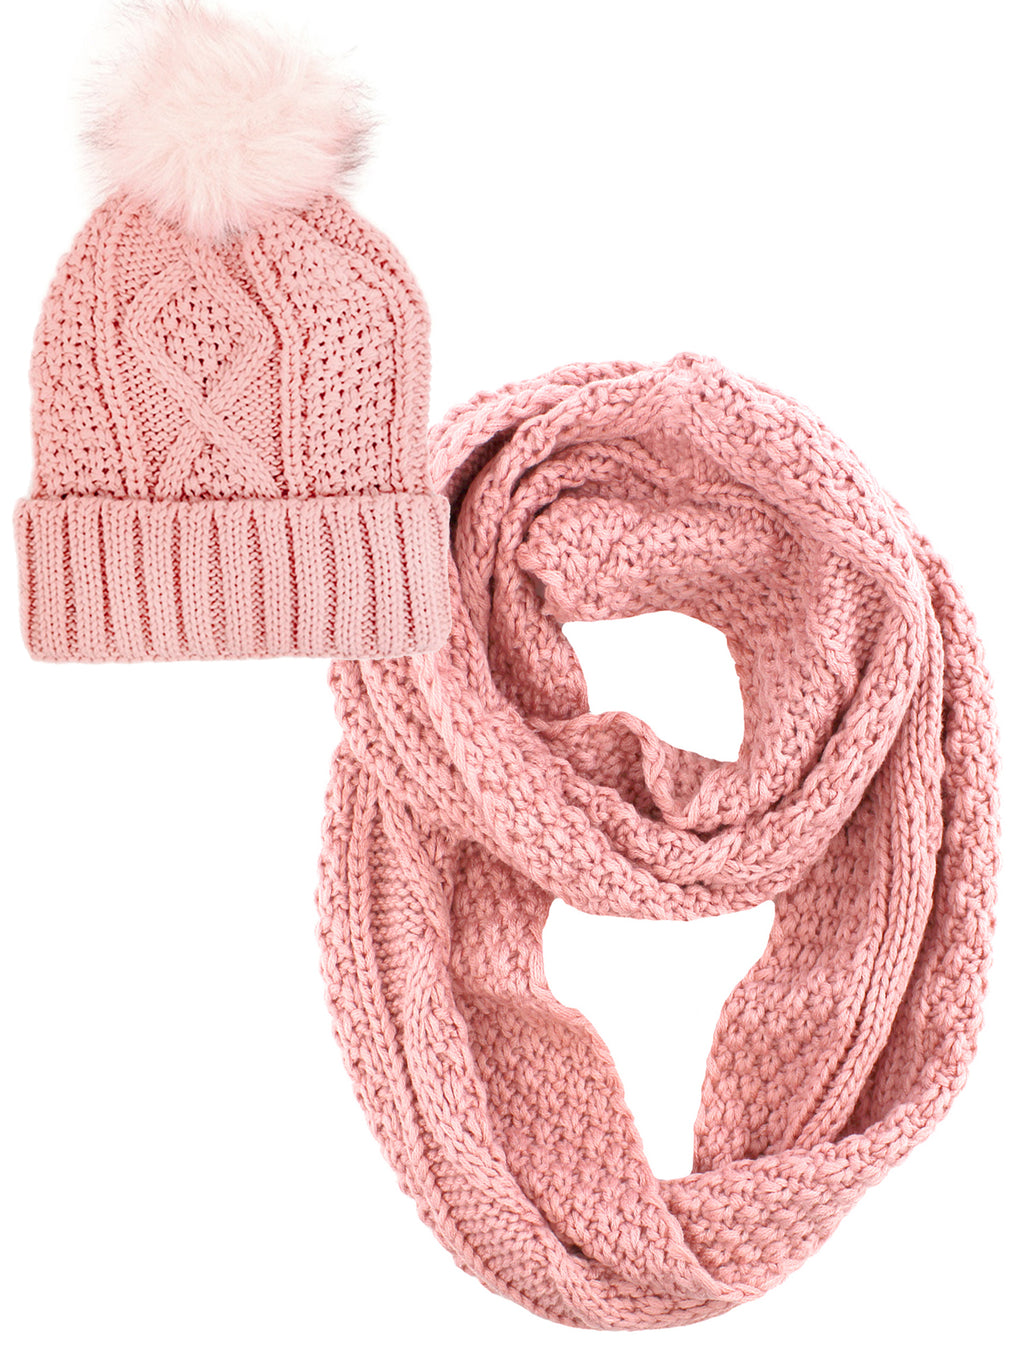 Knit Circle Scarf And Hat Set With Fur Pom Pom